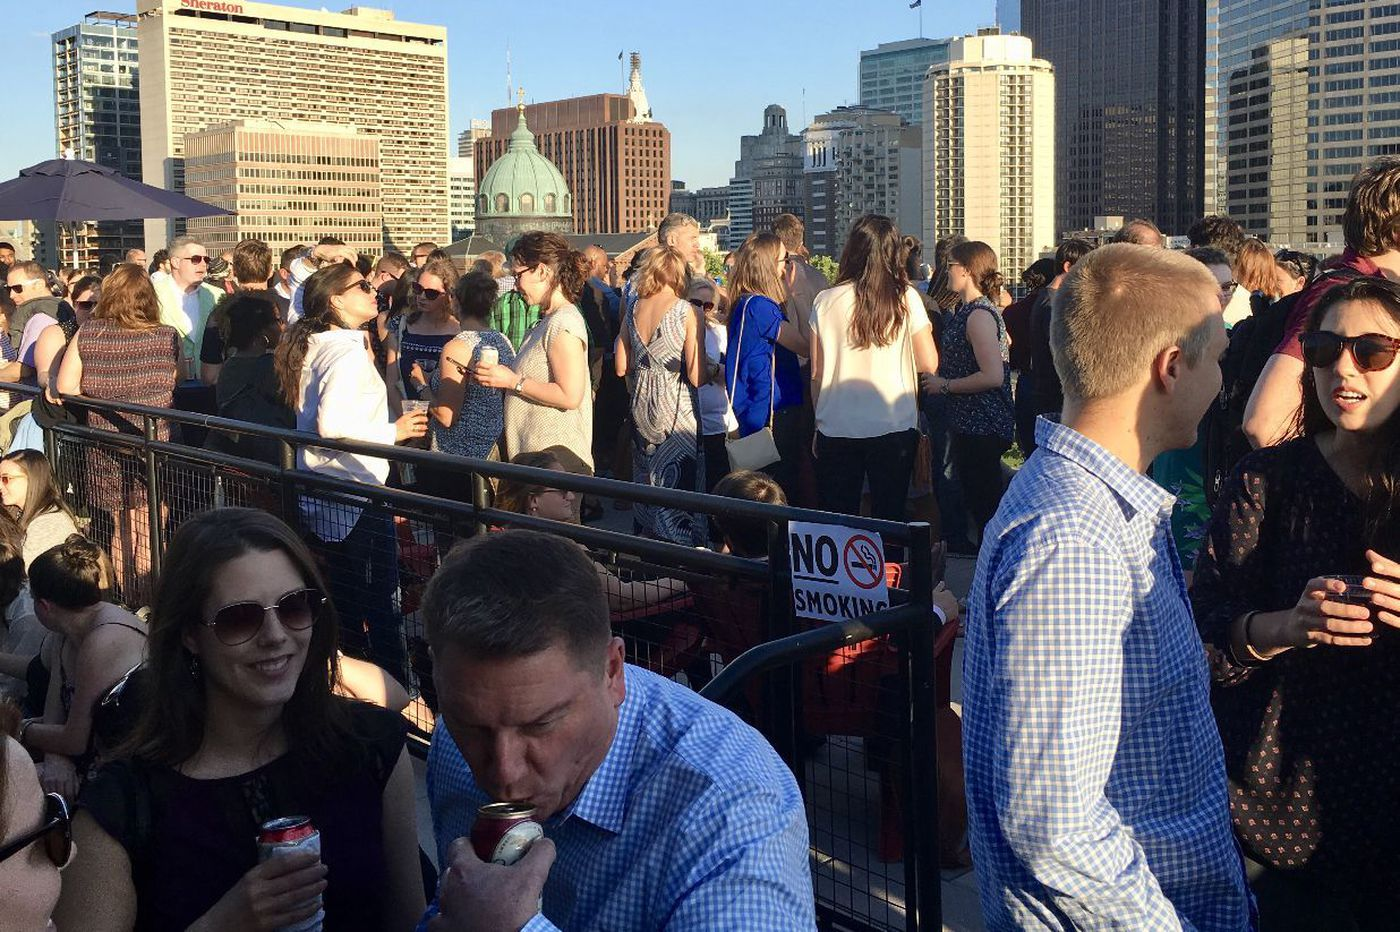 Brews & Views sets up a beer garden on the Free Library's roof